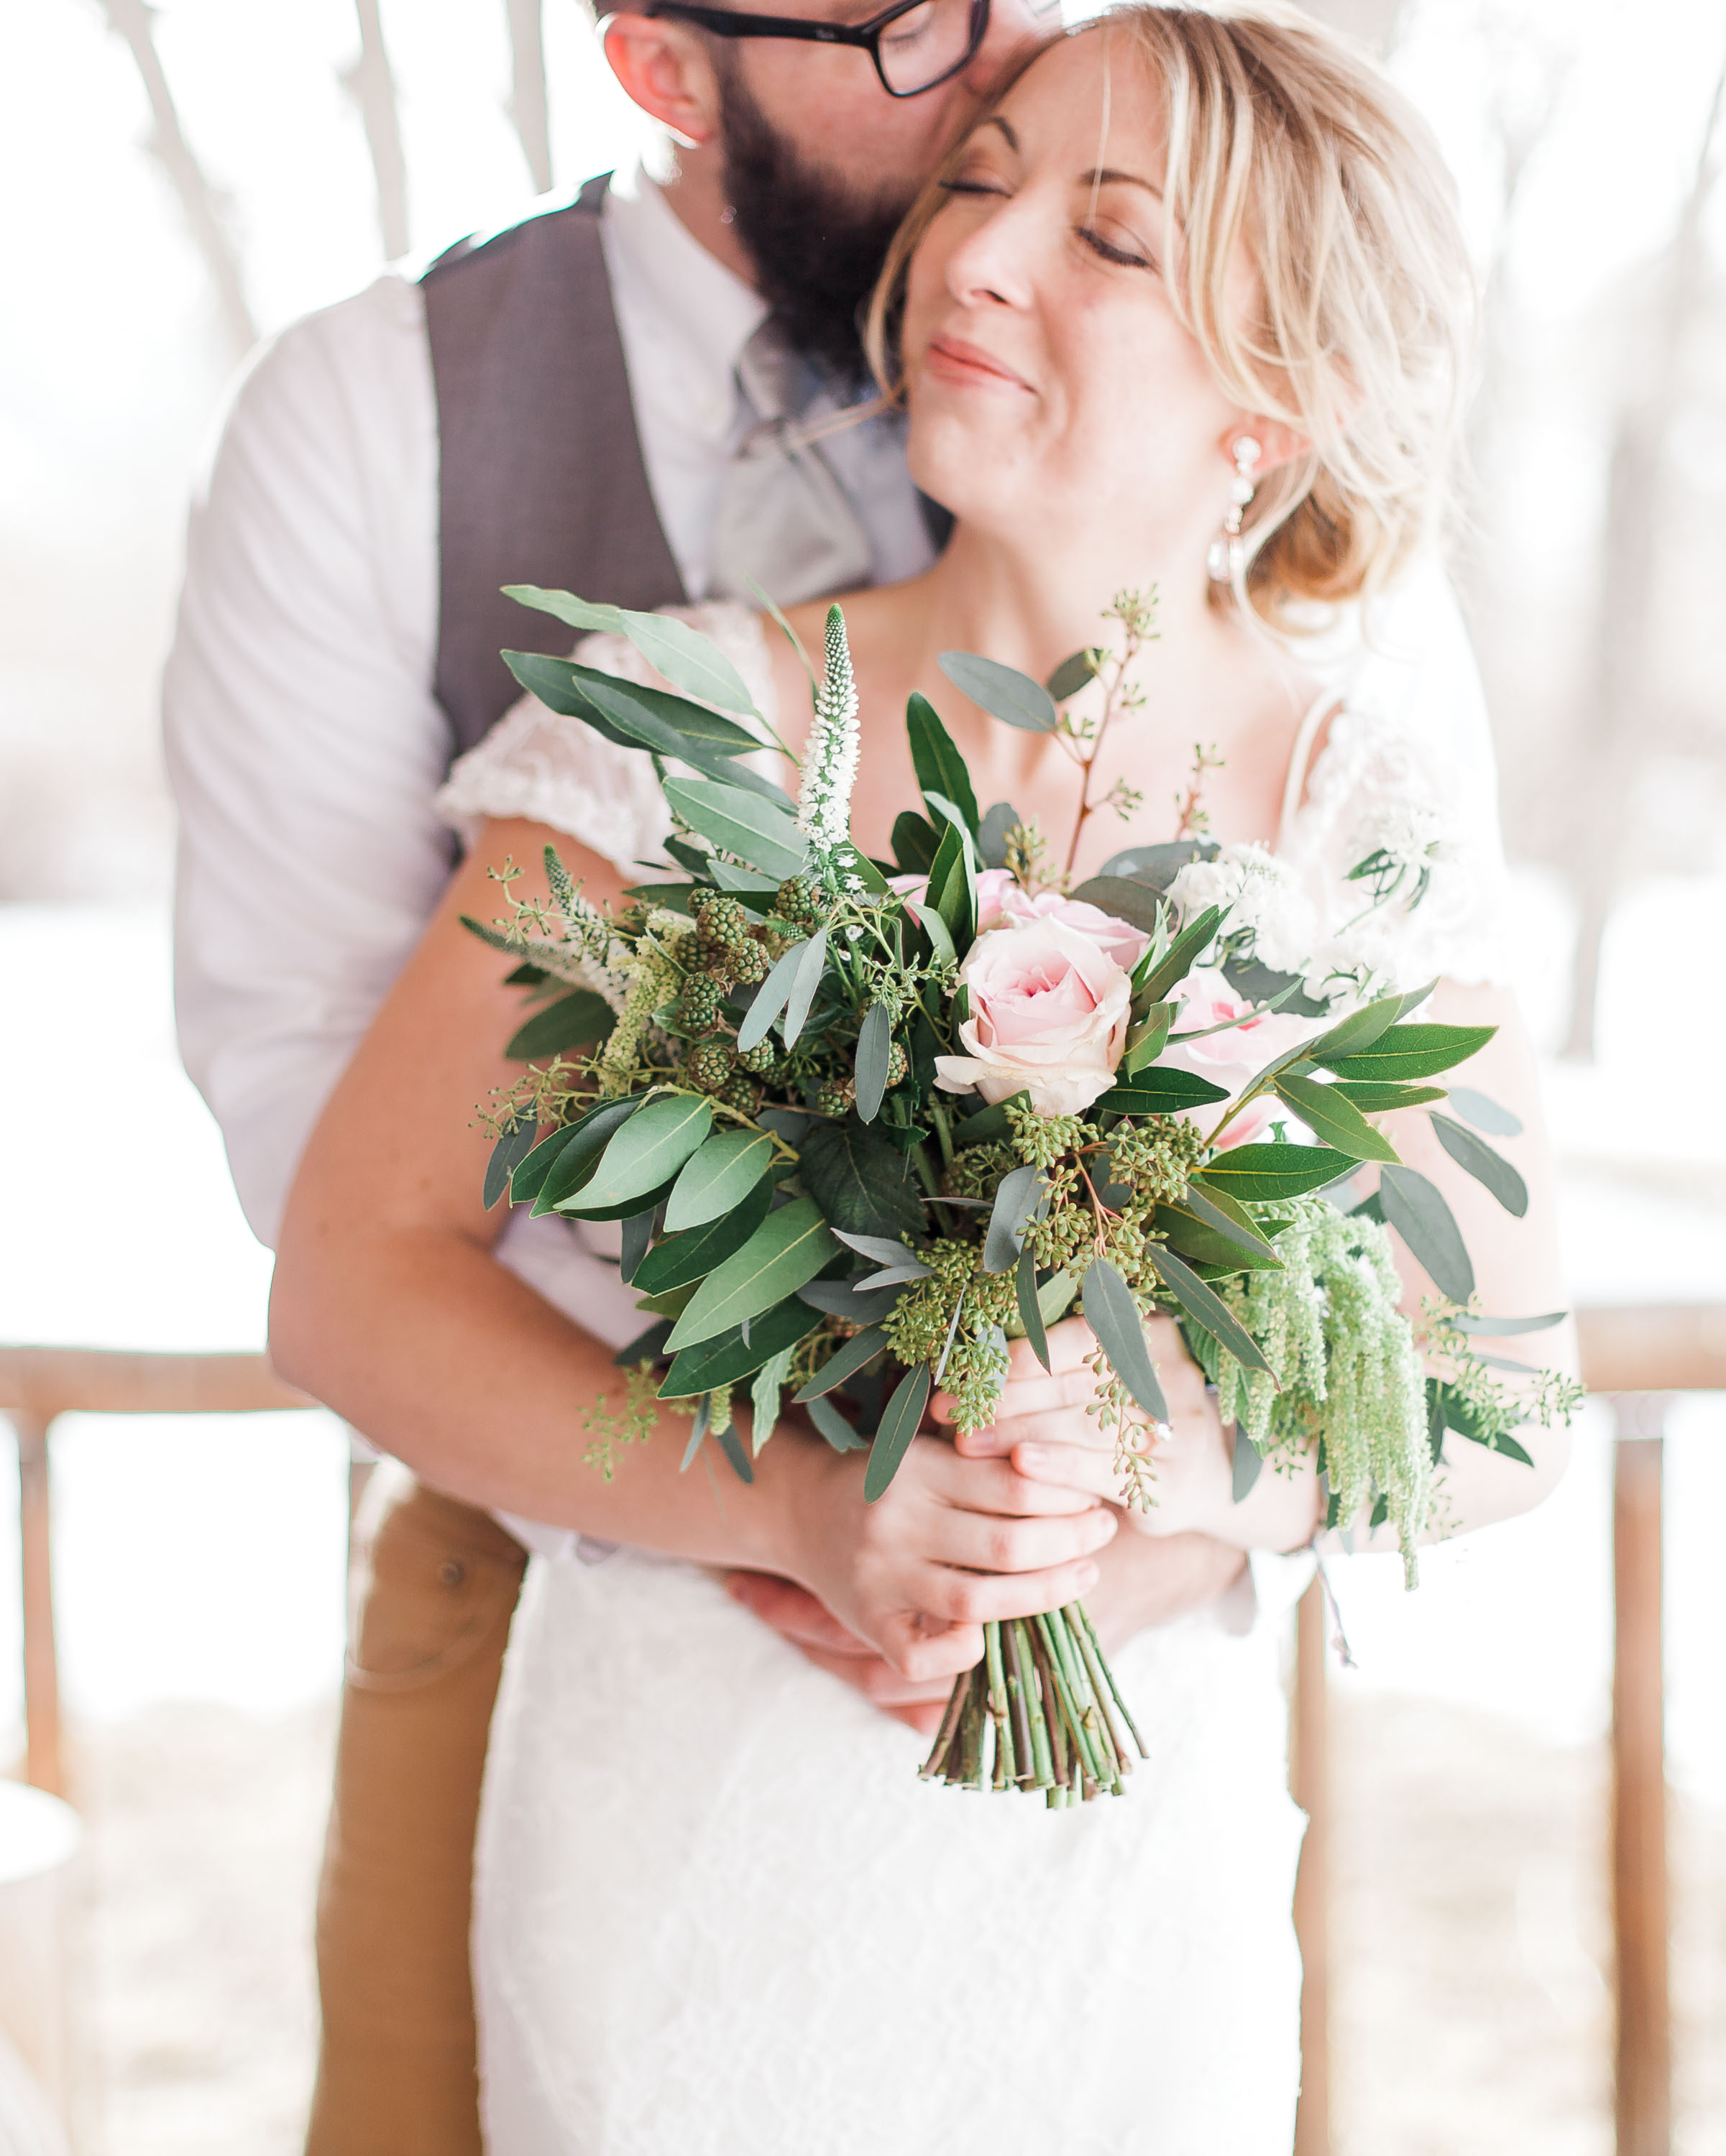 Snowy Range Ski Resort Wedding by Megan Lee Photography based in Laramie Wyoming.